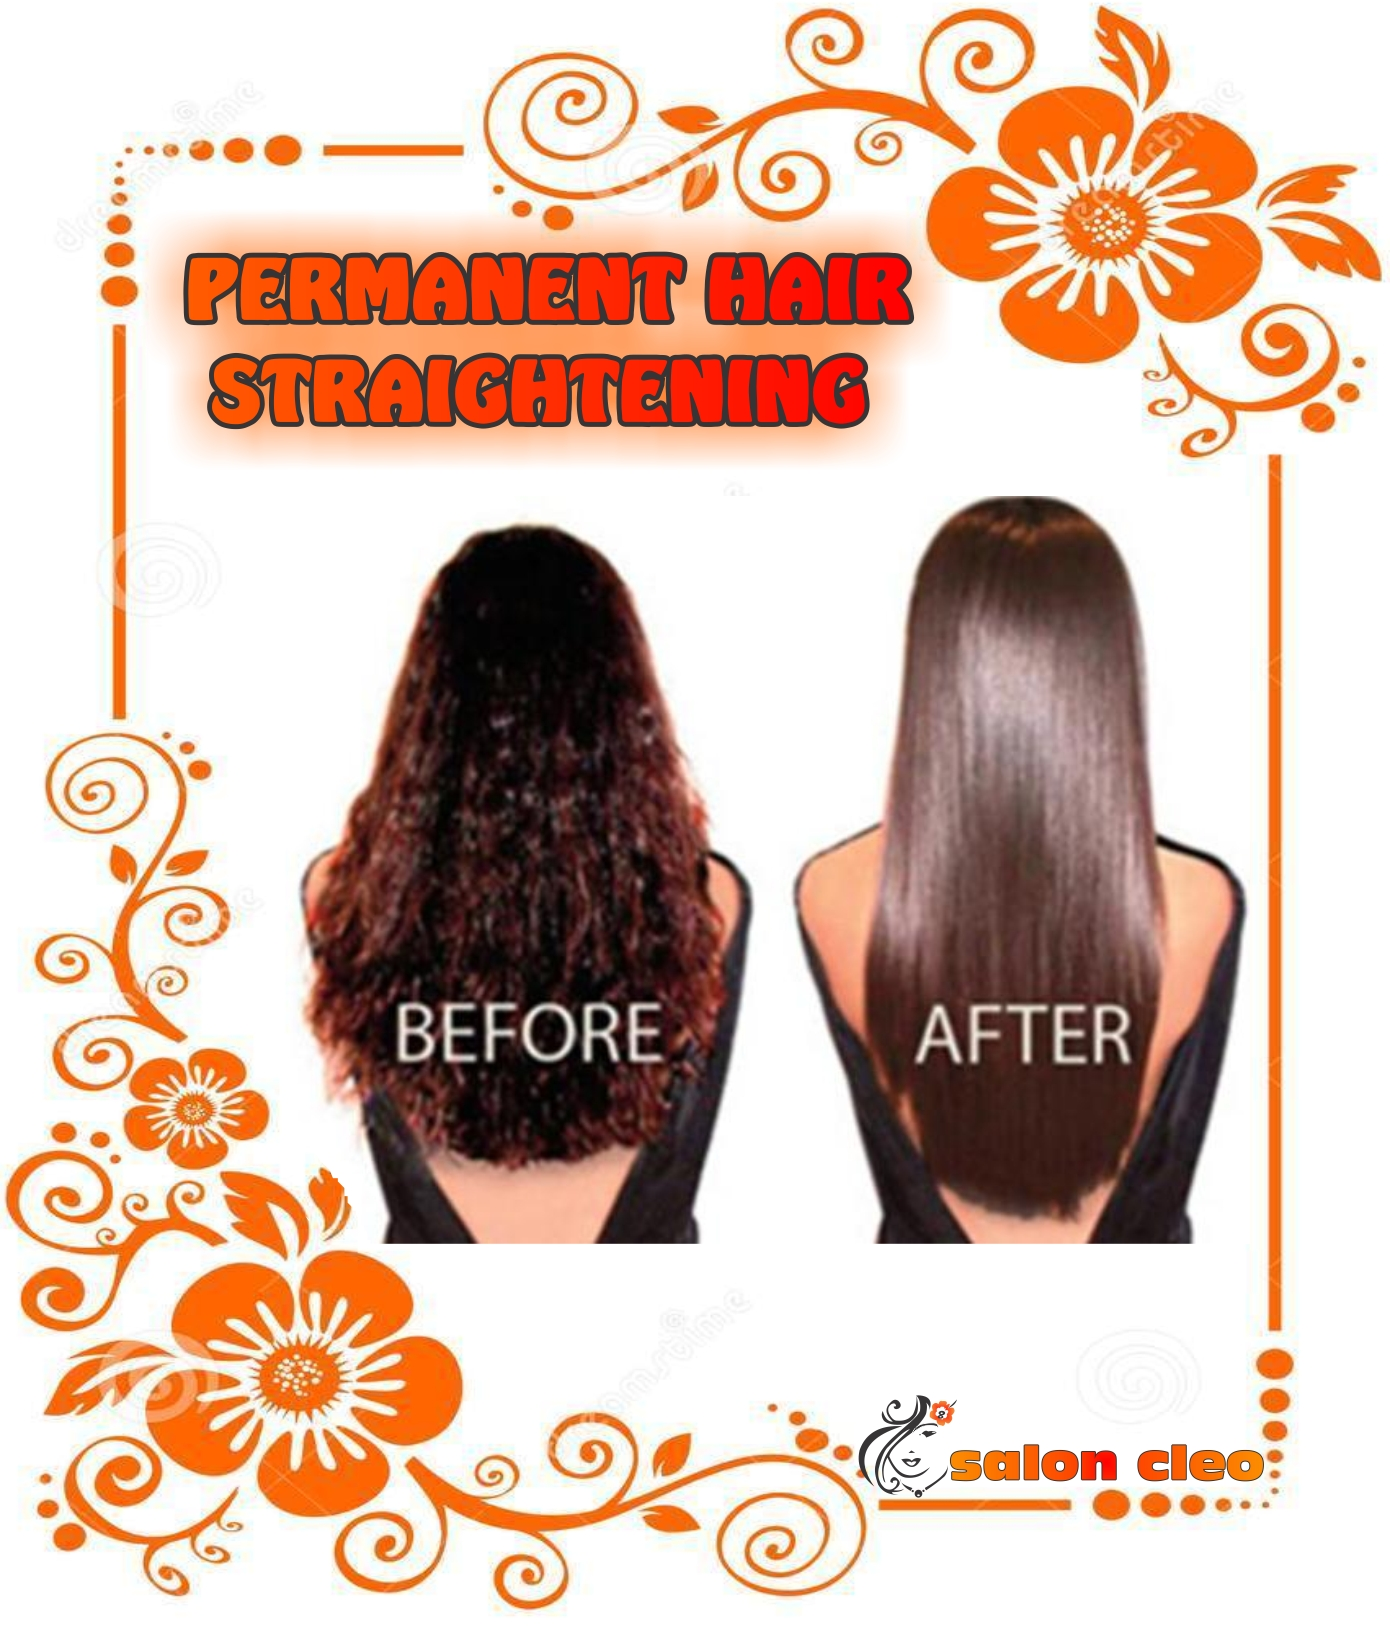 STOCKISTS OF GENUINE & ORIGINAL HAIR IRONS AT SALON CLEO PERMANENT HAIR STRAIGHTENING TREATMENT DONE AT SALON CLEO DURBAN WITH GUARANTEED RESULTS. FREE PRODUCTS FOR TREATMENT AND AFTER CARE OF YOUR HAIR STRAIGHTENING TREATMENT. WE HAVE THE CHEAPEST DEAL IN KZN FOR ALL CURLY UNMANAGEABLE HAIR at SALON CLEO 0315002353 cloud 9 hair irons, ghd hair irons, coriolliss hair iron straighteners , BHE Hair iron Stylers...for the cheapest deal in all hair irons in South Africa Durban @ salon cleo 0315002353 durban phoenix 0315009998BHE Styler Hair iron launched 2015 in South Africa. Beautiful Hair Everyday all us today for a quote on your bridal package to suit your special day. call Nivi 0736100316 for all bridal packages. SALON CLEO bridal wedding packages KRYOLAN, PROFESSIONAL MAKE-UP. FOR A FLAWLESS SENSUOUS DELIIOUS GLOWING LOOK WITH A TOUCH OF EXTRAVAGANCE. KRYOLAN HAS 750 COLOR-INTENSE SHADES IS LOVED BY PROFESSIONAL MAKE-UP ARTISTS WORLDWIDE. FOUNDATIONS AND MAKE-UPS FOR THE CHEAPEST DEAL IN KRYOLAN COSMETIC PRODUCTS AT SALON CLEO PHOENIX 0315002353 ACRYLIC NAILS Finger nails are an important part of overall appearance to many women You lead a busy life , you deserve a little pampering Royal treatment , reasonable prices . its all yours at salon cleo ACRYLIC NAILS Finger nails are an important part of overall appearance to many women You lead a busy life , you deserve a little pampering Royal treatment , reasonable prices . its all yours at salon cleo Professional Hair stylist Nivi Deenanath SALON CLEO. Family business established for 30 years. with an enormous clientelle. We are a team of hair designers with the skills, the tools and the experience to create beautiful styles. We have spent years perfecting our craft so we can work together as a team to make you feel beautiful and confident and give you an amazing experience in our salon mage and personal facial looks is everything today. We at SALON CLEO give off 100% in making you look your very best with use of the correct facial products at the cheapest affordable rates. facials, waxing, threading, chemical peel facials, dermaplex facial products, justine facial products,kryolan facial costmetics products. salon cleo phoenix 0315002353 0315009998 GARCINIA CAMBOGIA WONDER WEIGHT LOSS CAPSULES now available. COOL LIPOLYSIS FAT FREEZING WEIGHT LOSS TREATEMENT PROCEDURE done at salon cleo. FAT BURNER WEIGHT LOSS CAPSULE ALSO AVAILABLE AT SALON CLEO DURBAN. FERRADIC HEAT WEIGHT LOSS PADS & ELECTRO MAGNETIC TONING WEIGHT LOSS PADS...These procedures now available at salon cleo . call NIVI 0736100316 today for a quick fix to you weight loss resolutions  SALON CLEO FOR THE CHEAPEST GHD HAIR IRON IN DURBAN SALON CLEO HAS THE CHEAPEST DEAL IN CLOUD NINE HAIR IRON IN DURBAN SALON CLEO ONLY KEEPS GENUINE HAIR IRON STRAIGHTENERS SALON CLEO FOR THE CHEAPEST PRICE ON CARAOLIS HAIR IRONSSALON CLEO FOR THE CHEAPEST PRICE DEAL ON ALL CORIOLIS HAIR IRONS GHD GHD GHD GHD SALES GHD CHEAPEST GHD CHEAPEST GHD HAIR IRONS SALON CLEO SALON CLEO GHD SALON CLEO CLOUD 9 SALON CLEO CLOUD NINE SALON CLEO CARAOLIS HAIR IRON SALON CLEO CORIOLIS HAIR IRONS GHD HAIR IRON REPAIRS CLOUD NINE HAIR IRON REPAIRS DURBAN CORIOLIS HAIR IRON REPAIRS DURBAN RCS CREDIT CARDS ACCEPTED HERE AT OUR STORE FOR PURCHASE OF YOUR CORIOLLIS HAIR IRON.RCS PURCHASES GHD HAIRS IRONS RCS PURCHASES CLOUD 9 HAIR IRONS RCS PURCHASES CLOUD NINE HAIR IRON APPLICATIONS NOW DONE INSTORE FOR AN RCS CREDIT CARD & FEEDBACK WITH 48 HOURS.COROILIS HAIR IRON REPAIRS DURBAN HAIR IRON REPAIR CENTRE DURBAN GHD REPAIRS DURBAN GHD HAIR IRON REPAIRS PROFFESSIONALLY DONE IN DURBAN PHOENIX  CHEAPEST PRICE ON ALL HAIR IRONS GHD CLOUD 9 CLOUD NINE CARIOLIS CORIOLIS GHD HAIR IRONS DURBAN SALON CLEO PHOENIX Salon Cleo is the cheapest Stockists  of GHD HAIR IRONS, CLOUD 9 HAIR IRONS, CARIOLIS HAIR IRON GHD NEW RANGE HAIR IRONS:GHD ECLIPSE NOW AVAILABLE AT SALON CLEO PHOENIX DURBAN 0315009998 CLOUD NINE MENS MINI STYLERS...CLOUD 9 THE TOUCH HAIR IRON...NEW RANGE OF THE CLOUD NINE SERIES.CLOUD 9 ON AN EXTREMLY LOW SPECIAL AT R1750 (CASH ONLY) ONLY AT SALON CLEO KZN DURBAN 0315002353....0315009998SALON CLEO HAS THE  CHEAPEST DEAL ON CLOUD NINE HAIR IRON STRAIGHTENERS in Durban Kzn.Salon Cleo is the cheapest Stockists of GHD HAIR IRONS, CLOUD 9 HAIR IRONS, CORIOLLIS HAIR IRONCLOUD 9 MENS MINI STYLERS...CLOUD NINE THE TOUCH HAIR IRON....CLOUD 9  BHE HAIR IRON STYLERSBeautiful Hair Everyday  The unique BHE Styler protects your hair while you style, thanks to its SMART plates that help to keep your hair healthy and strong.  The BHE Styler SMART plates include: Kera Therapy protein infused plates assists in smoothing the cuticles and heal the hair, in time of split ends and damaged hair Keratin is a naturally occurring protein, which is a vital element in strong, healthy hair. Next generation ceramic plates are infused with Keratin proteins that transfer to your hair during styling and last the life of the product,